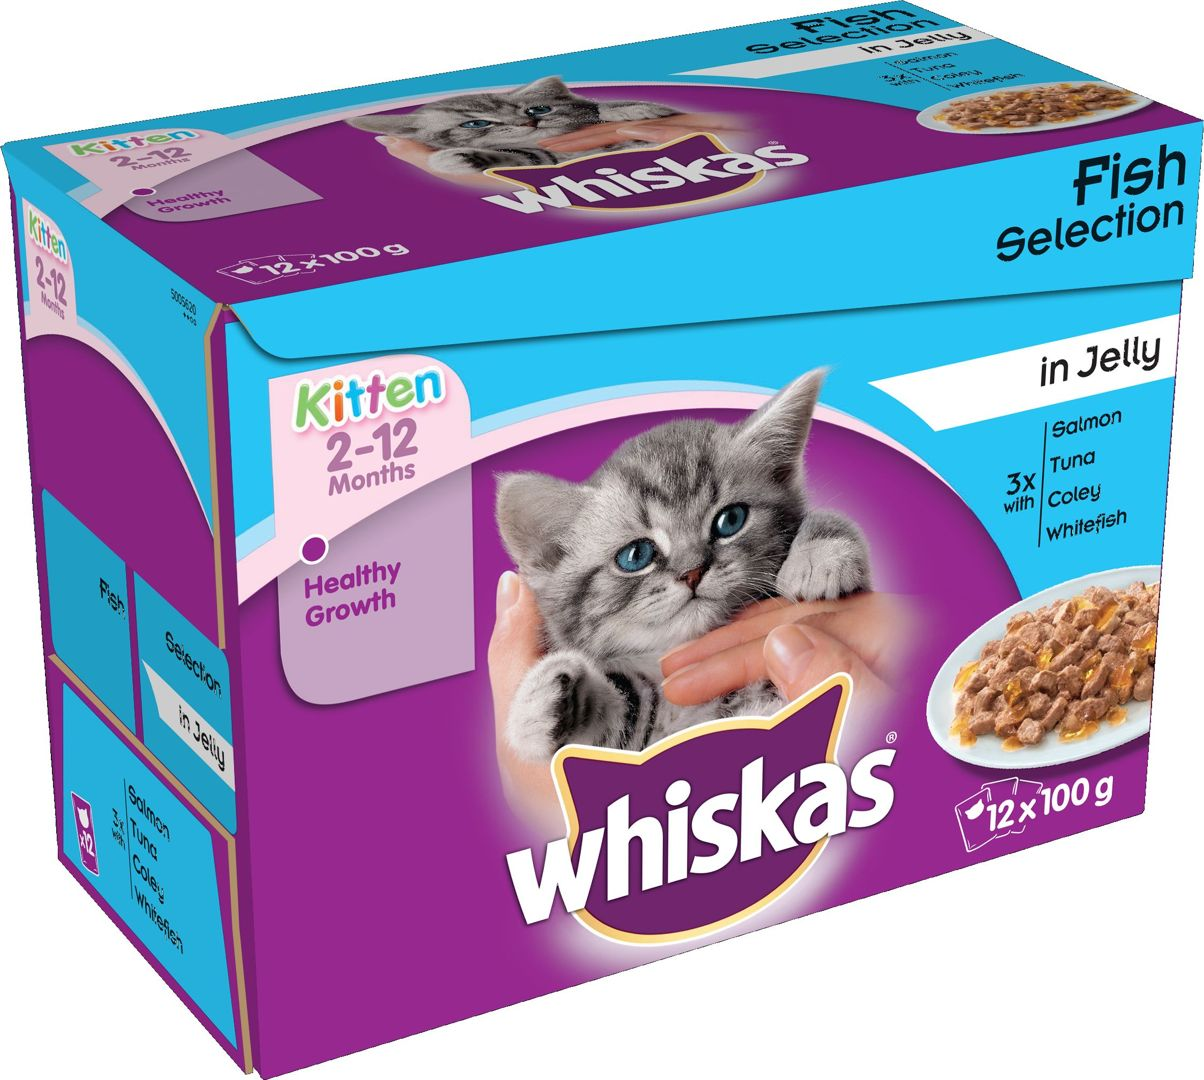 Whiskas Pouch in Jelly Kitten Fish Selection 12x100g